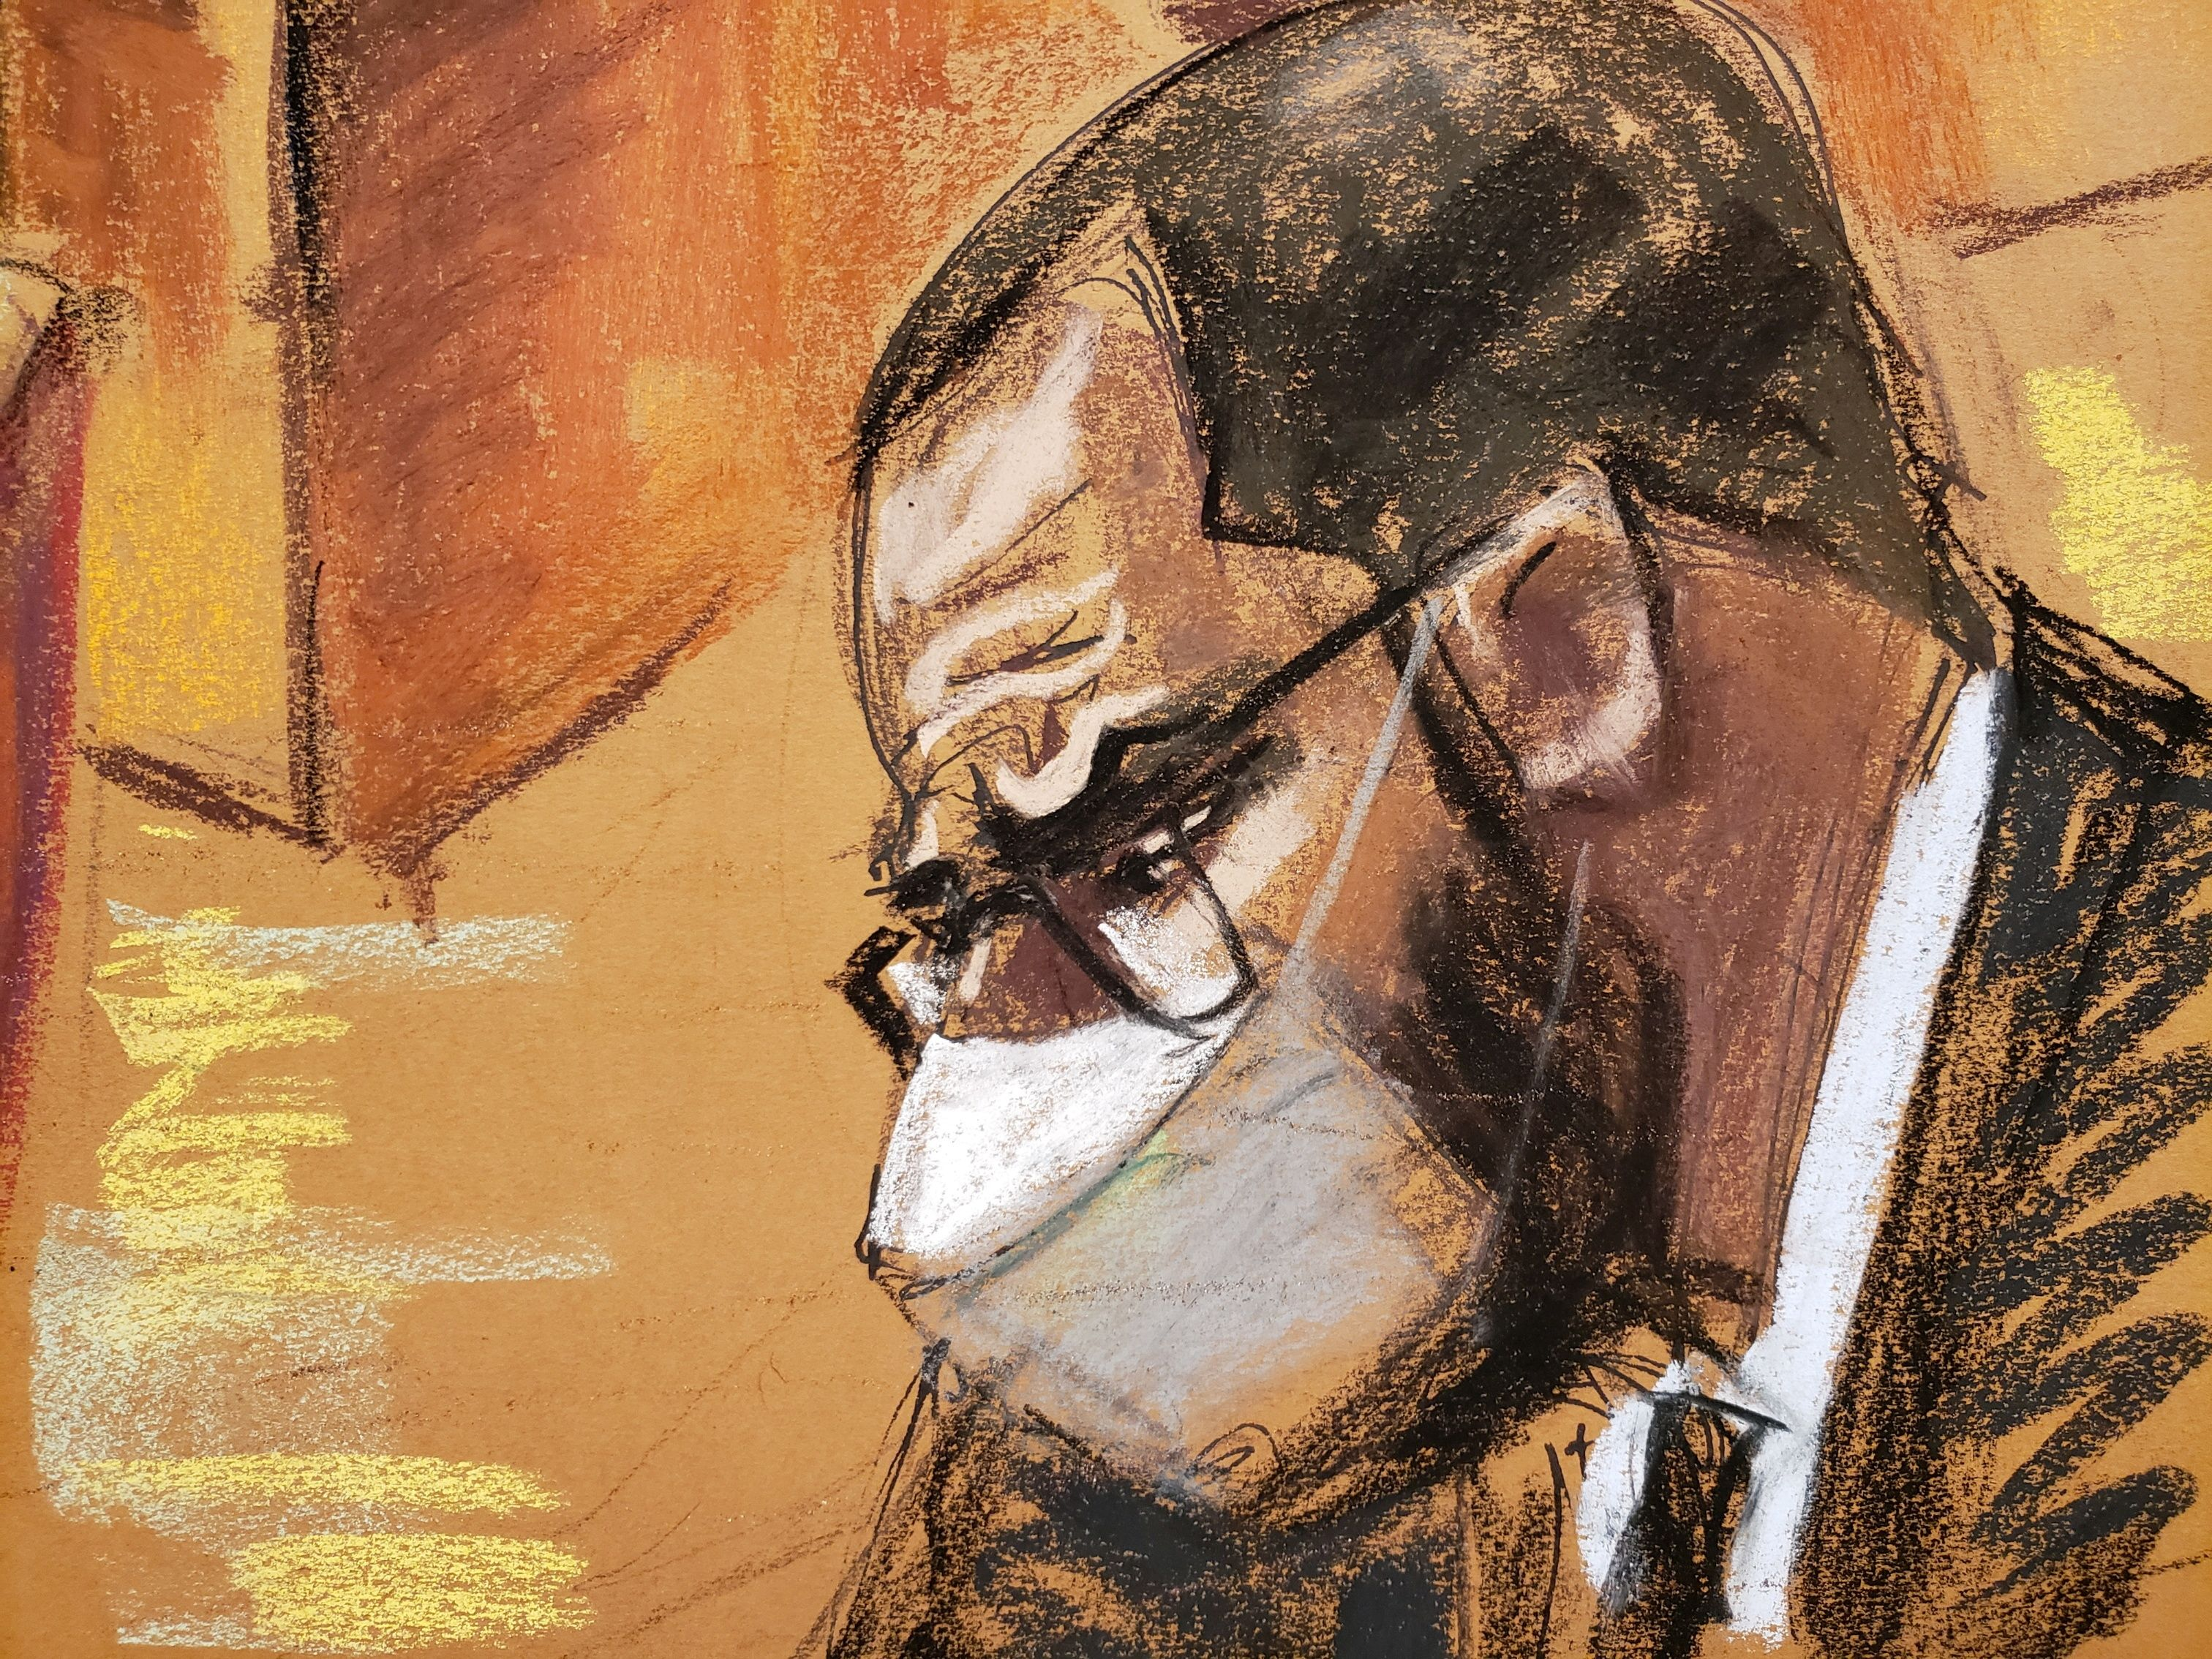 R. Kelly listens as Jeffrey Meeks testifies for the defense during Kelly's sex abuse trial at Brooklyn's Federal District Court in a courtroom sketch in New York, U.S., September 21, 2021. REUTERS/Jane Rosenberg